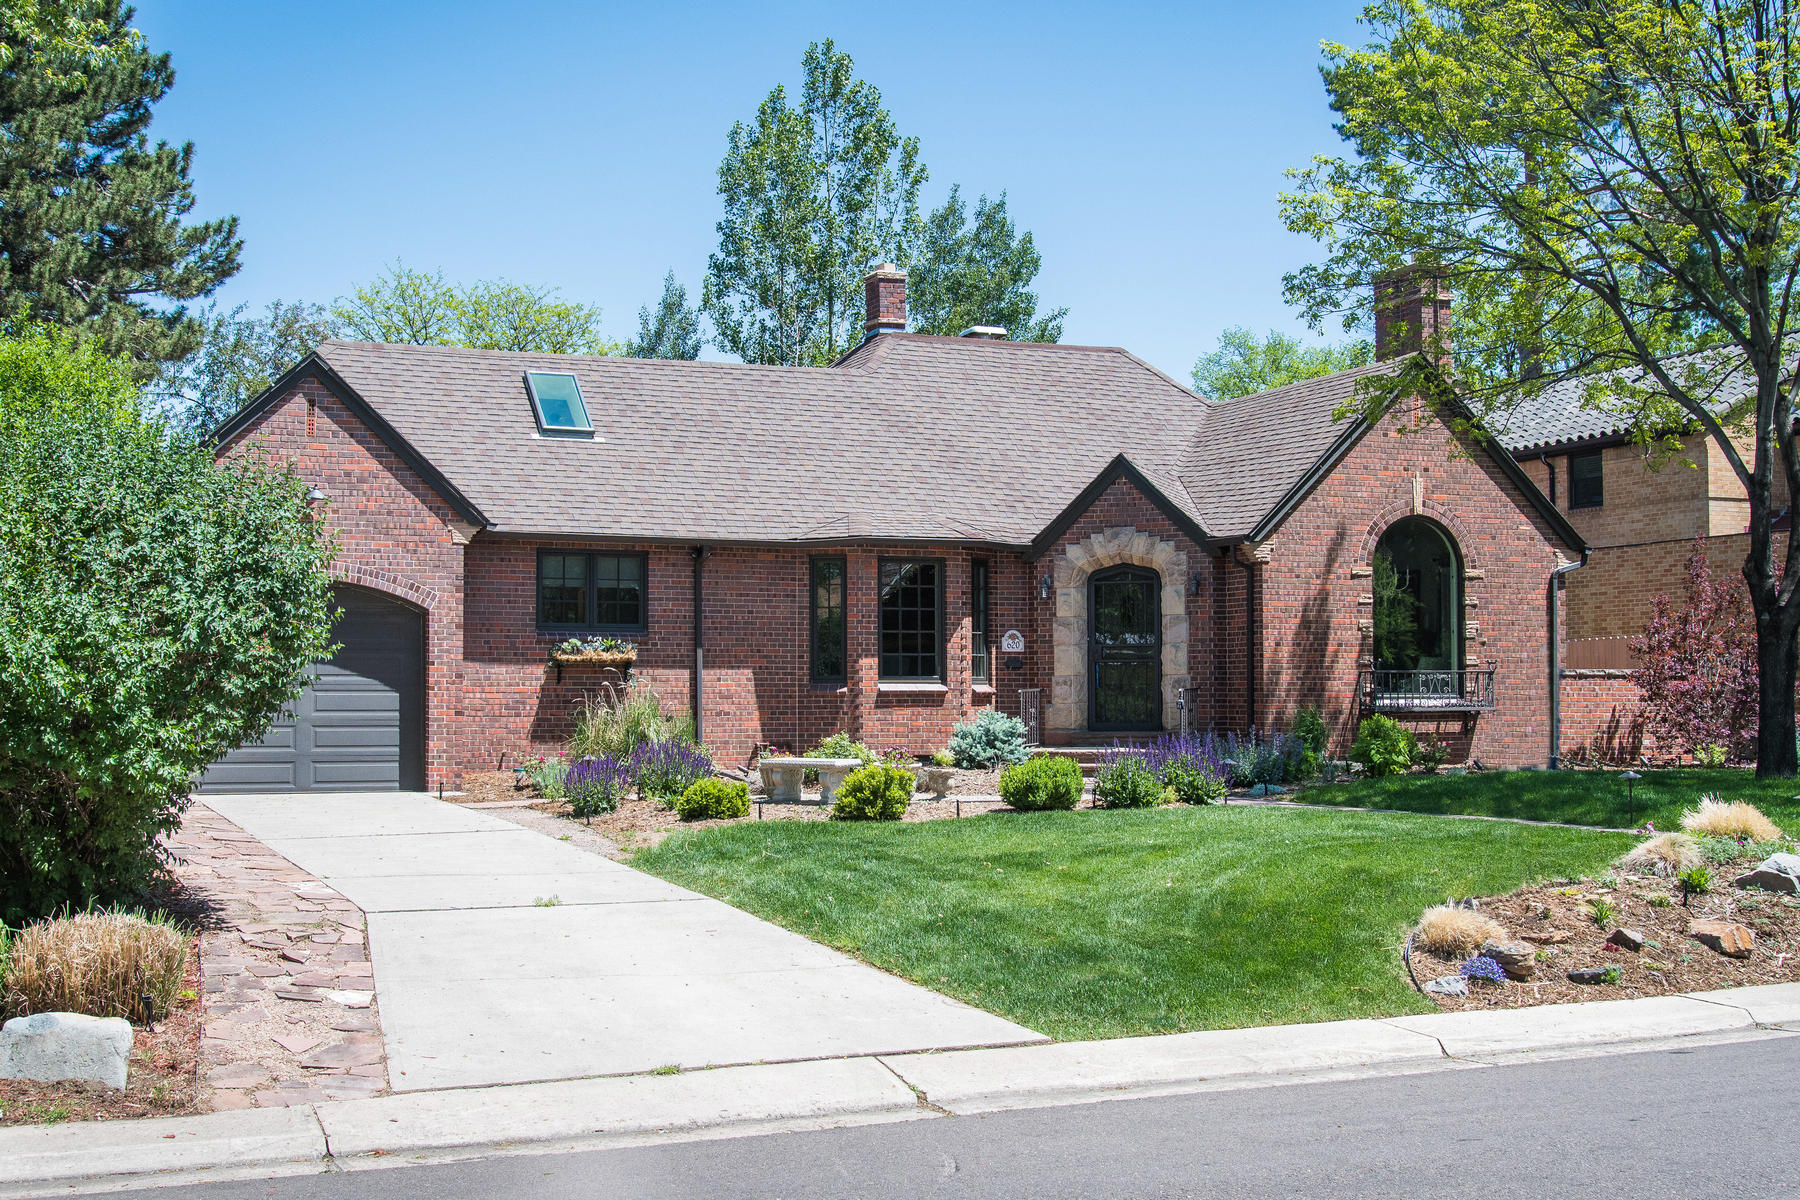 Single Family Home for Active at Welcome to an amazing and thoughtfully remodeled Tudor in Montclair 620 Jersey St Denver, Colorado 80220 United States